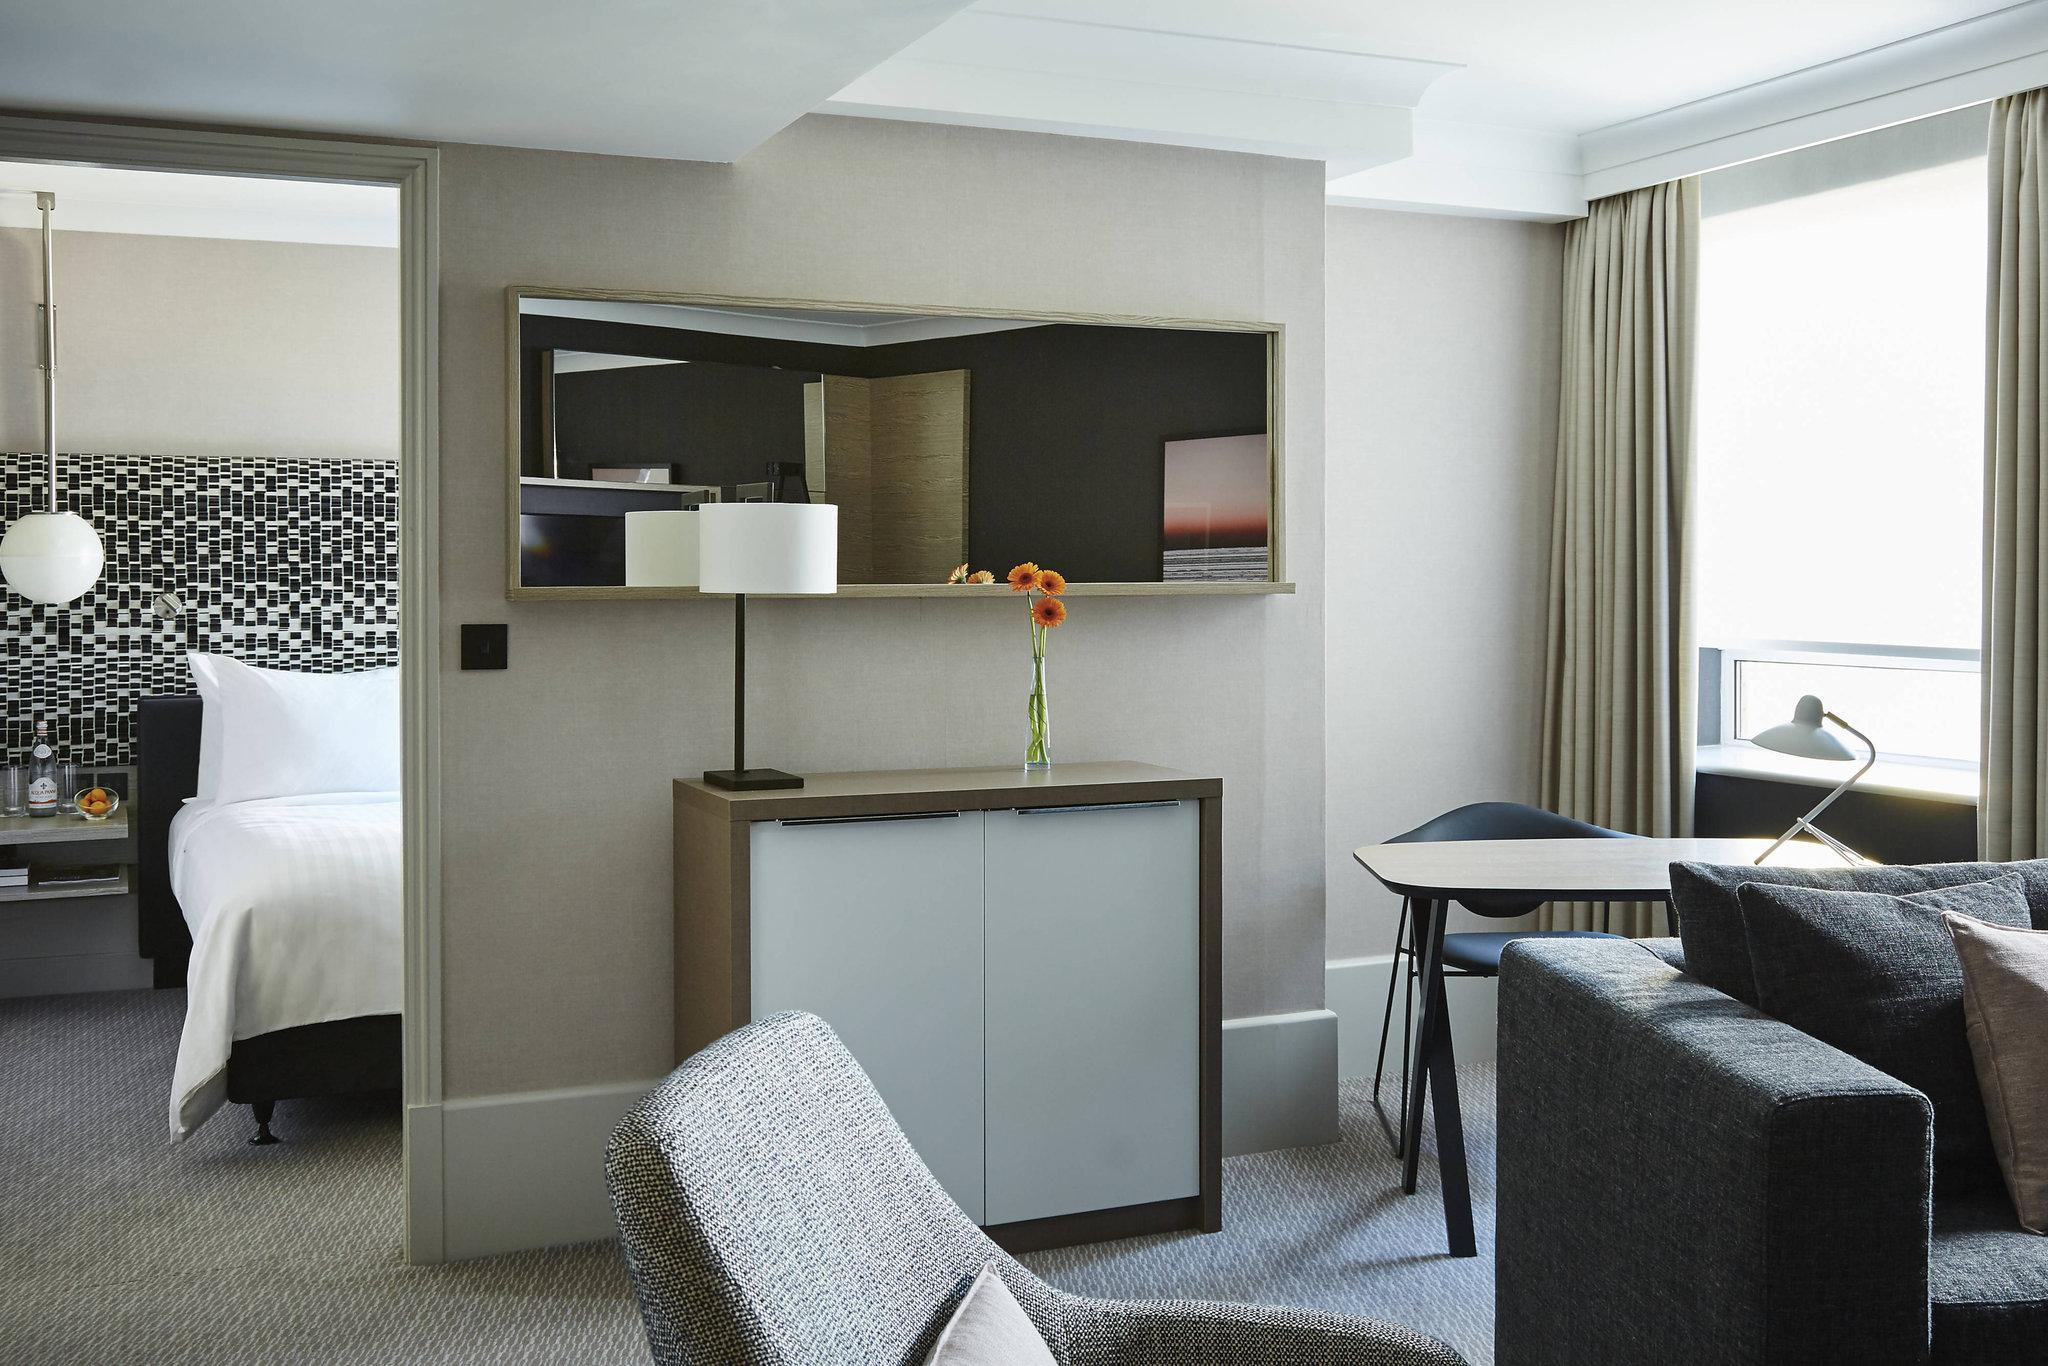 Executive Suite, Executive lounge access, 1 King, Sofa bed